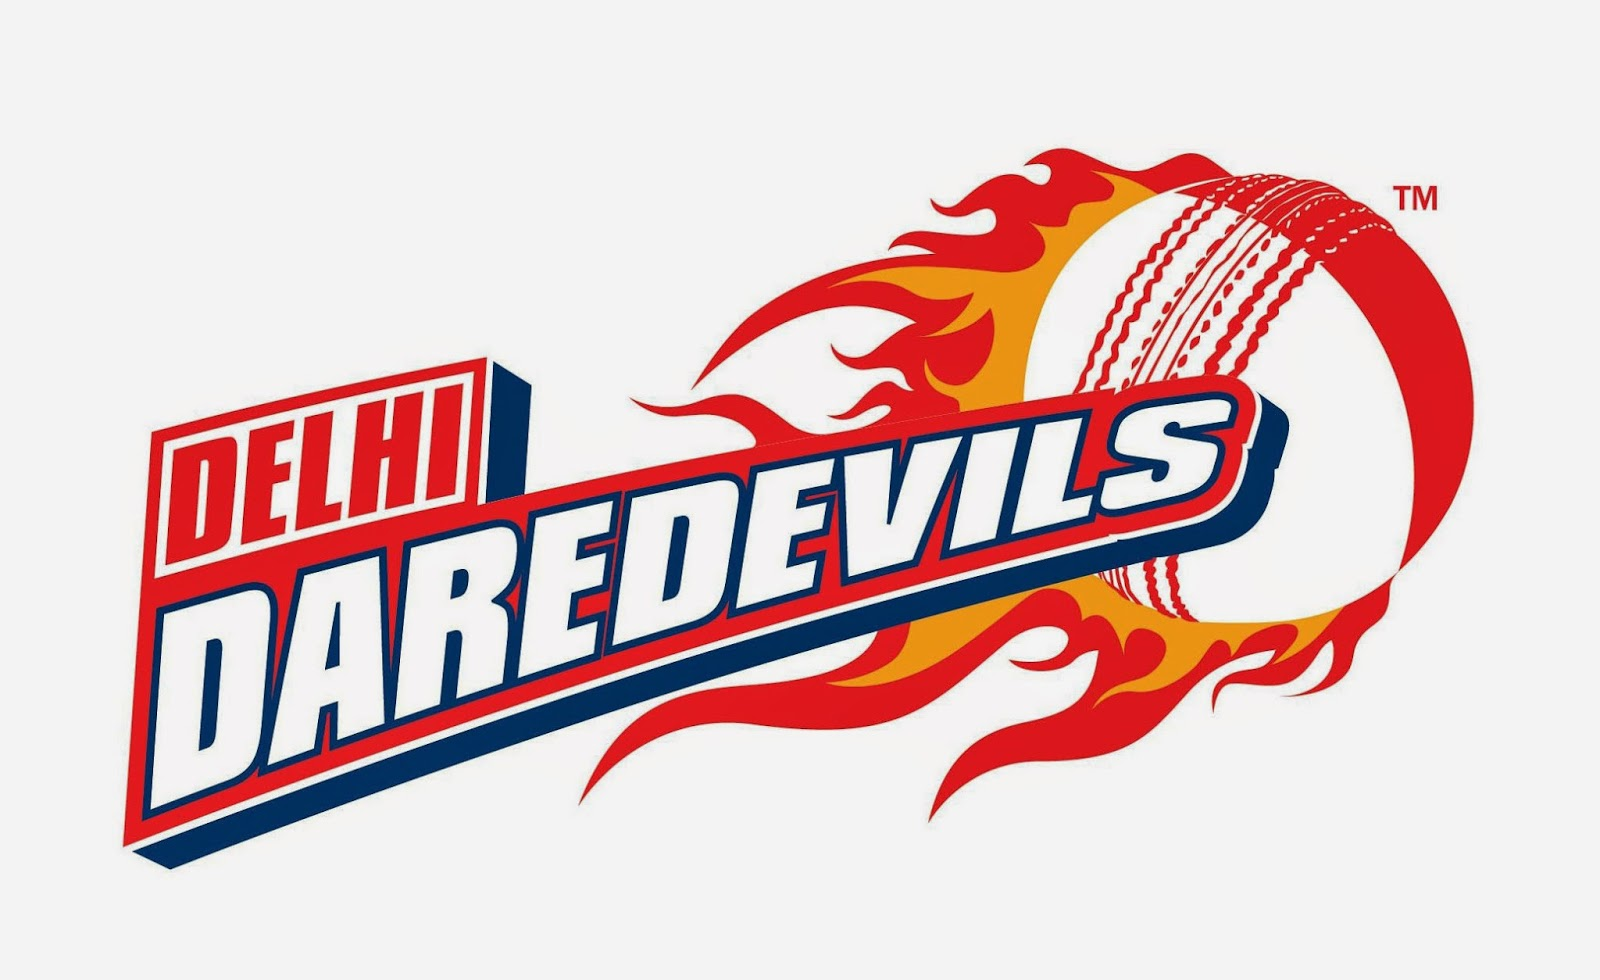 IPL 8: Delhi Daredevils records in Indian Premier League